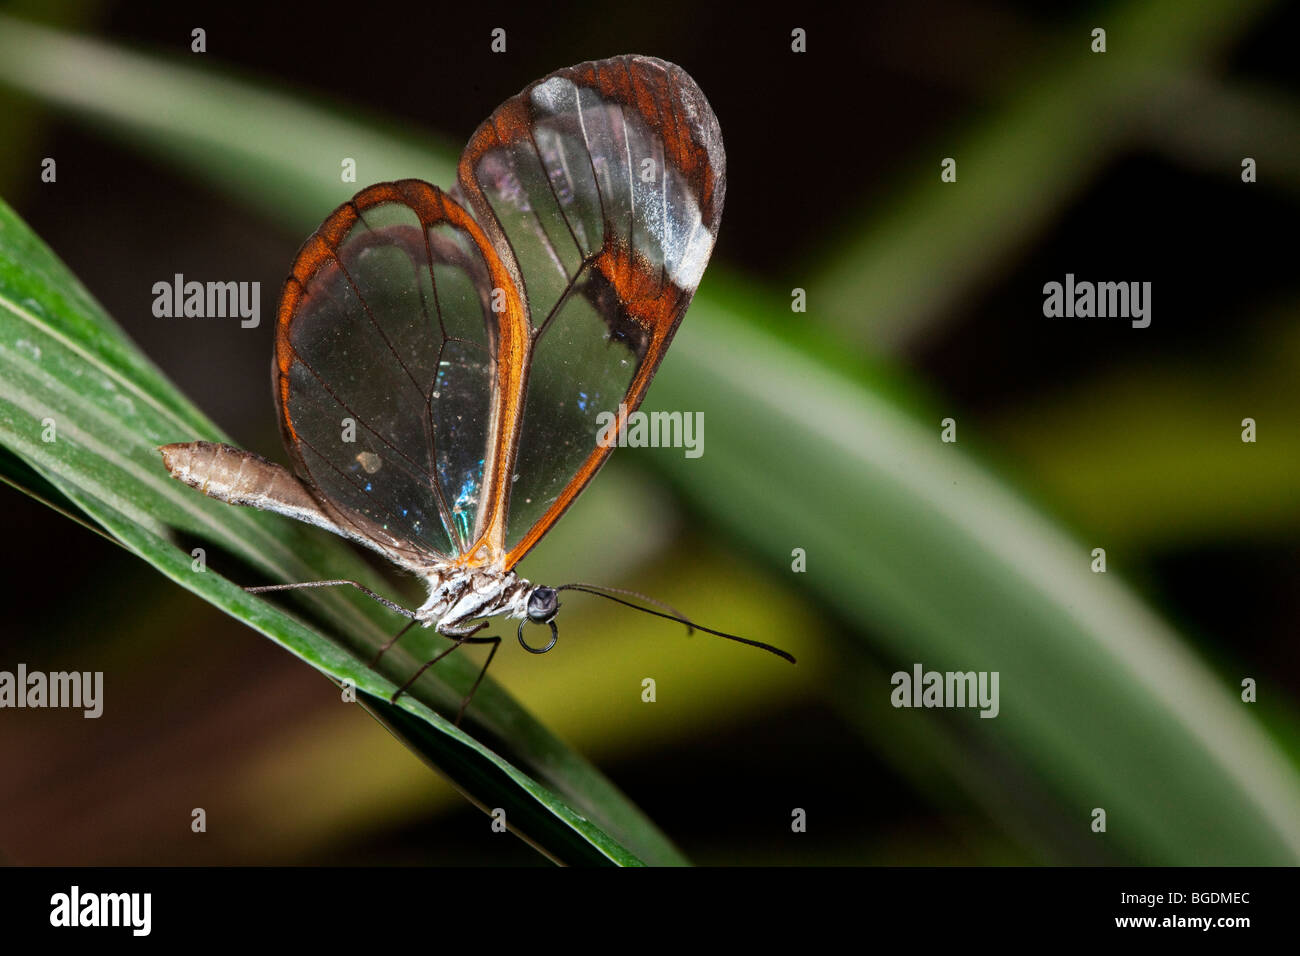 Greta oto butterfly, Parc de la tête d'or (Golden Head Park), Lyon, France - Stock Image